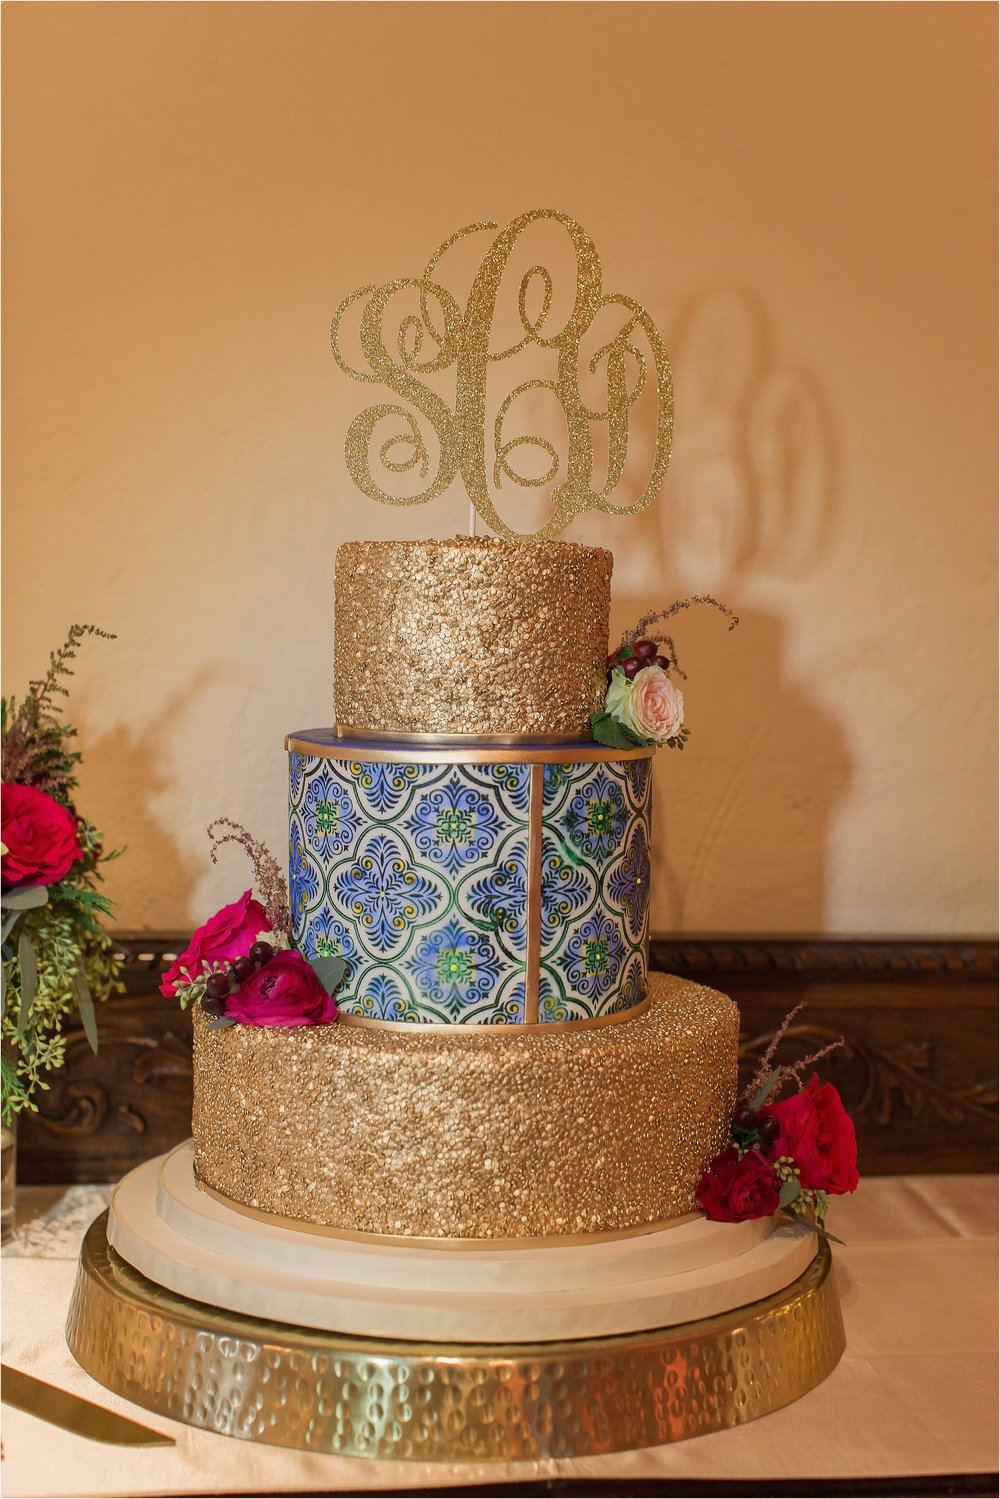 Casa_Feliz_Alfond_Inn_Winter_WeddingndhamGrandWedding_0095.jpg